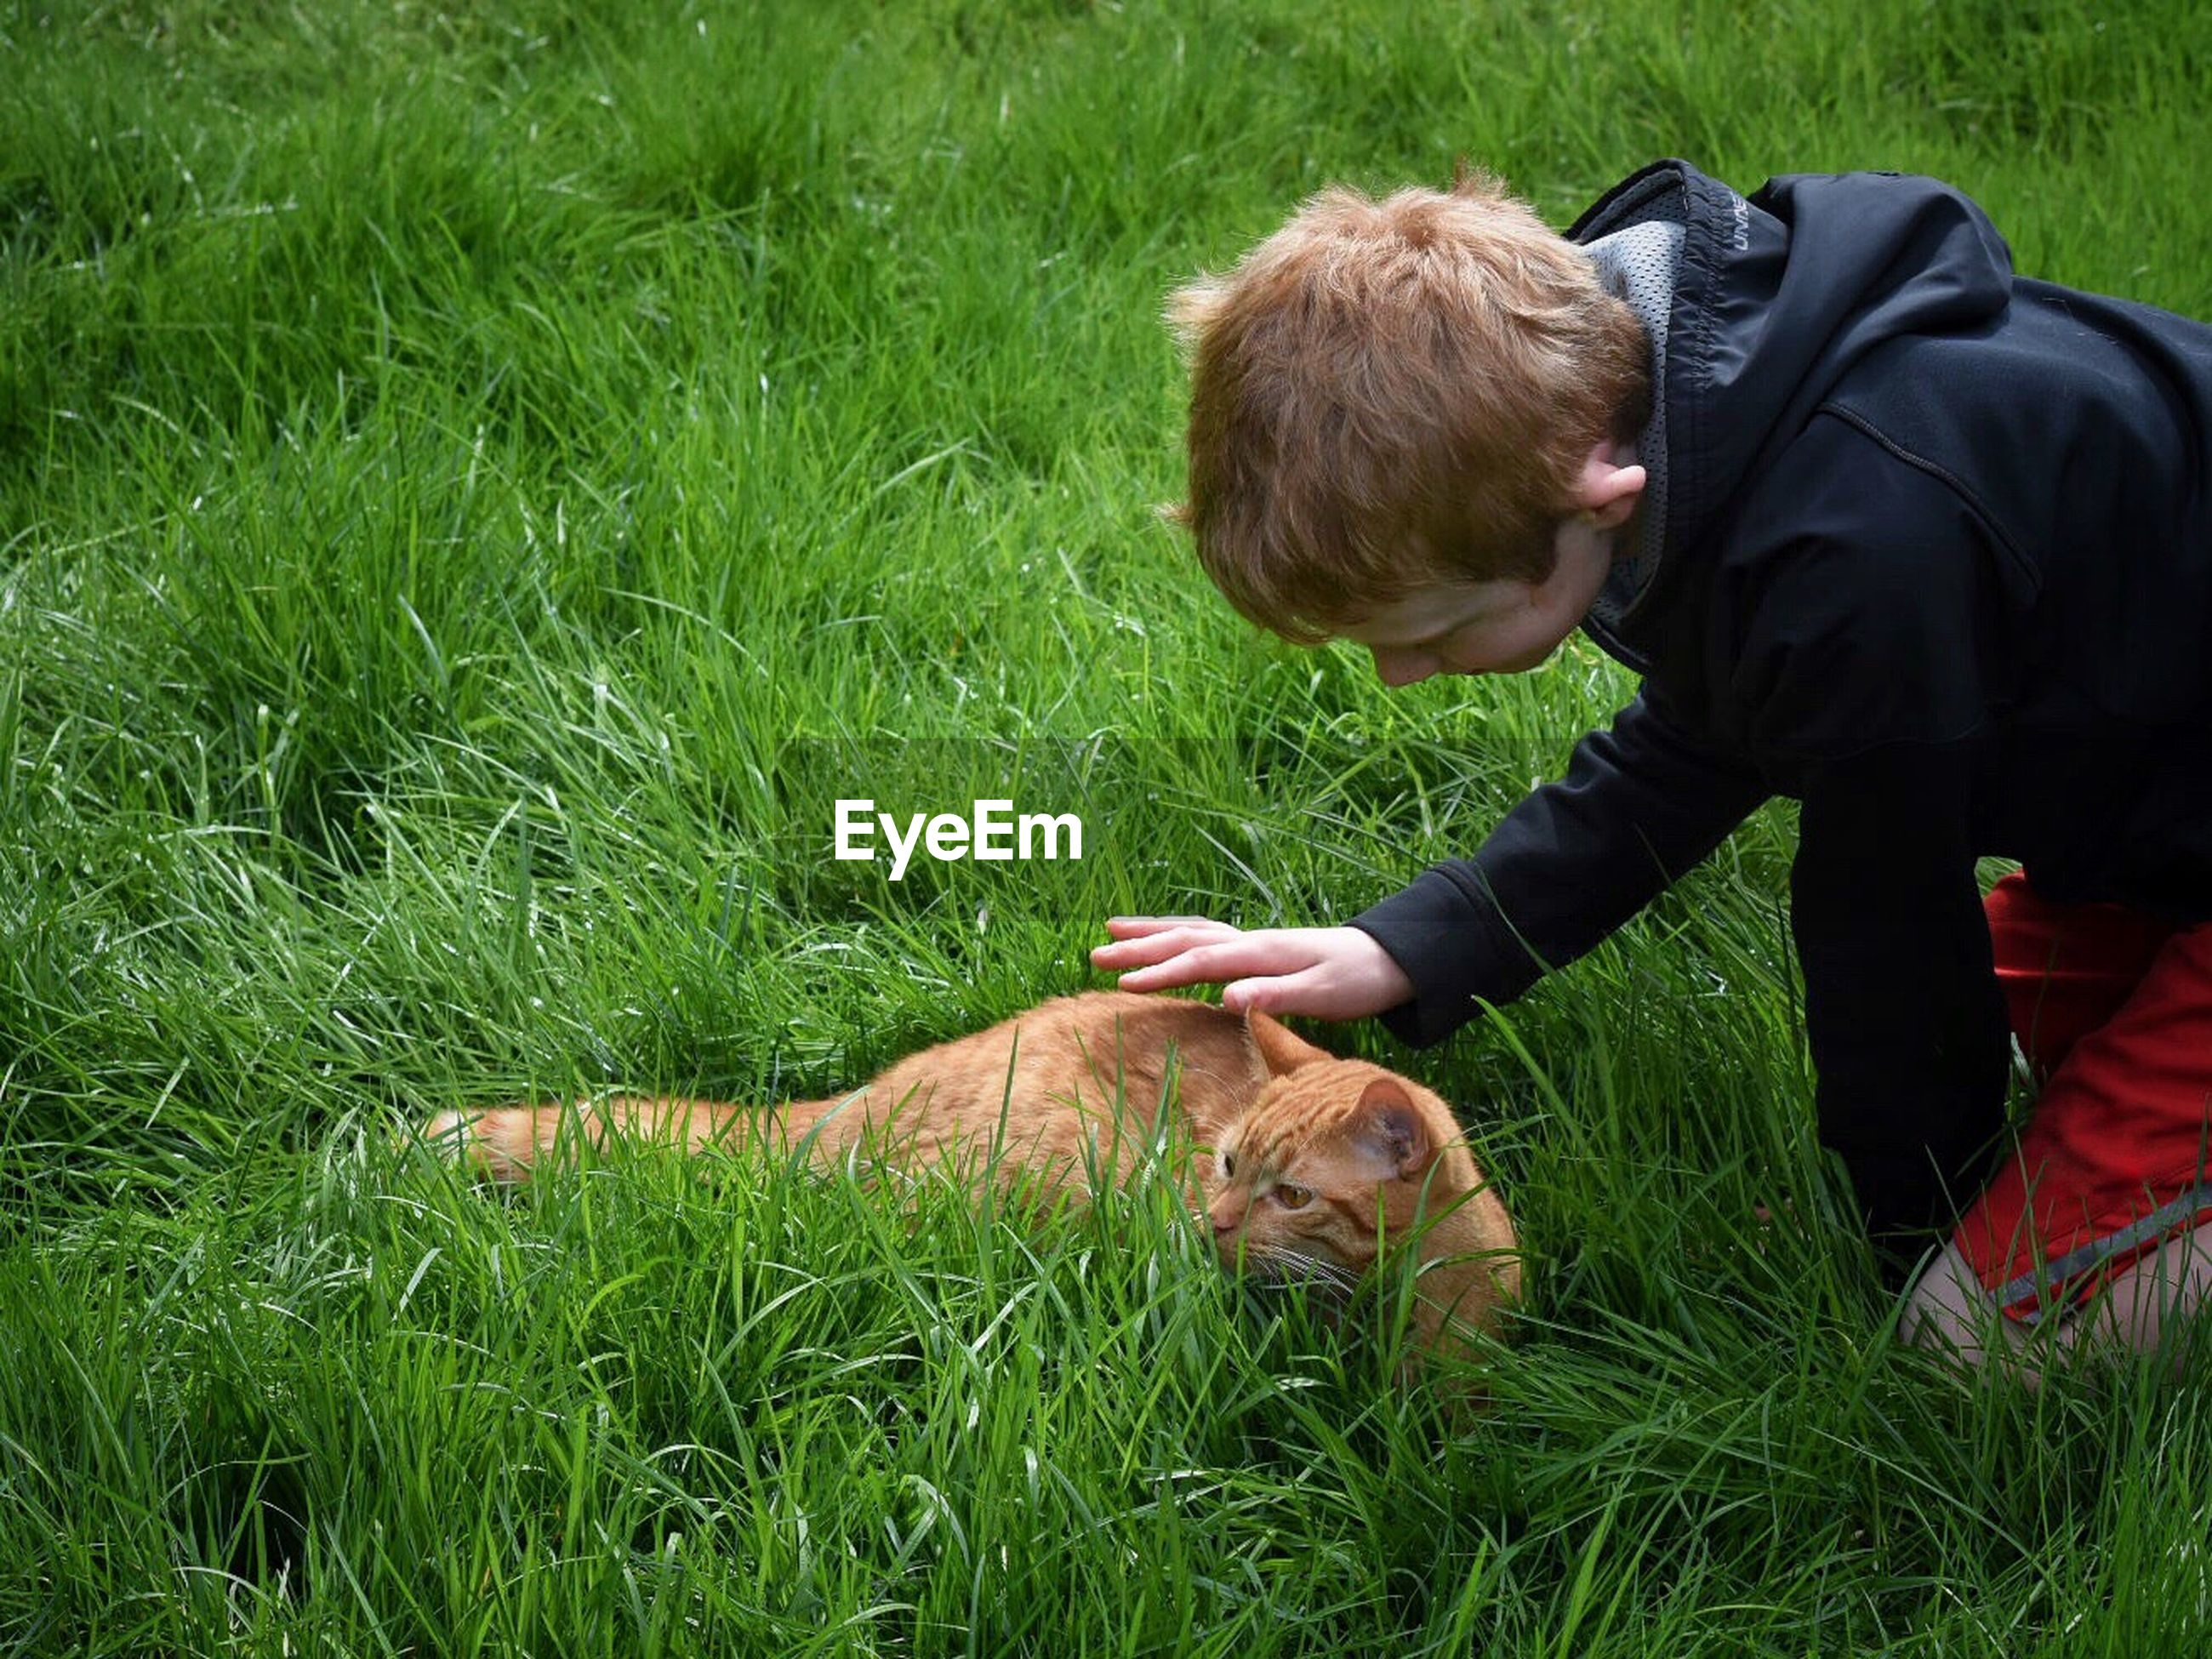 High angle view of boy stroking ginger cat on grassy field